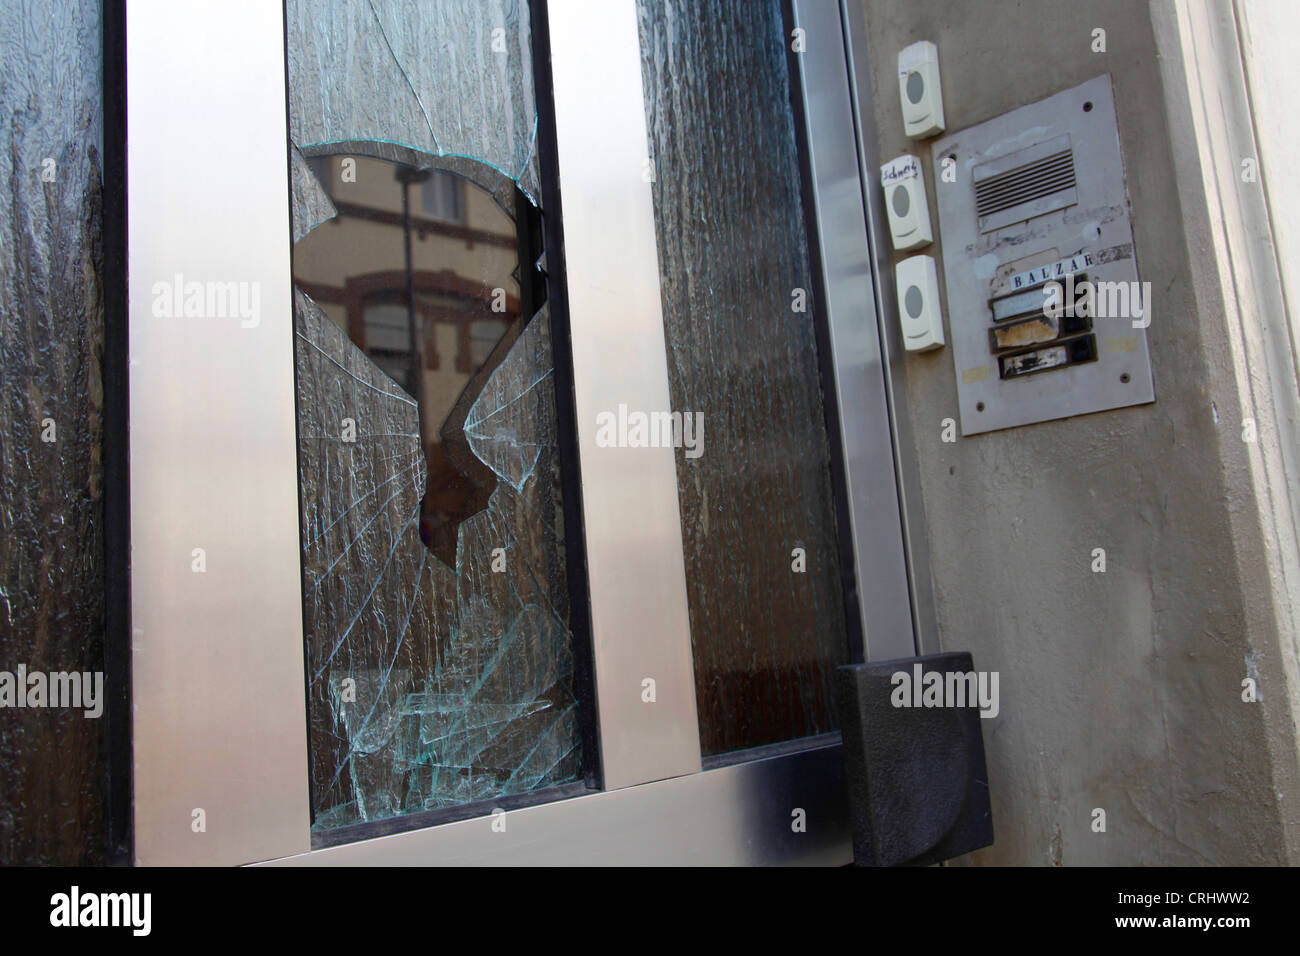 demolished house entrance with broken glass plate and doorbell panel, Germany - Stock Image